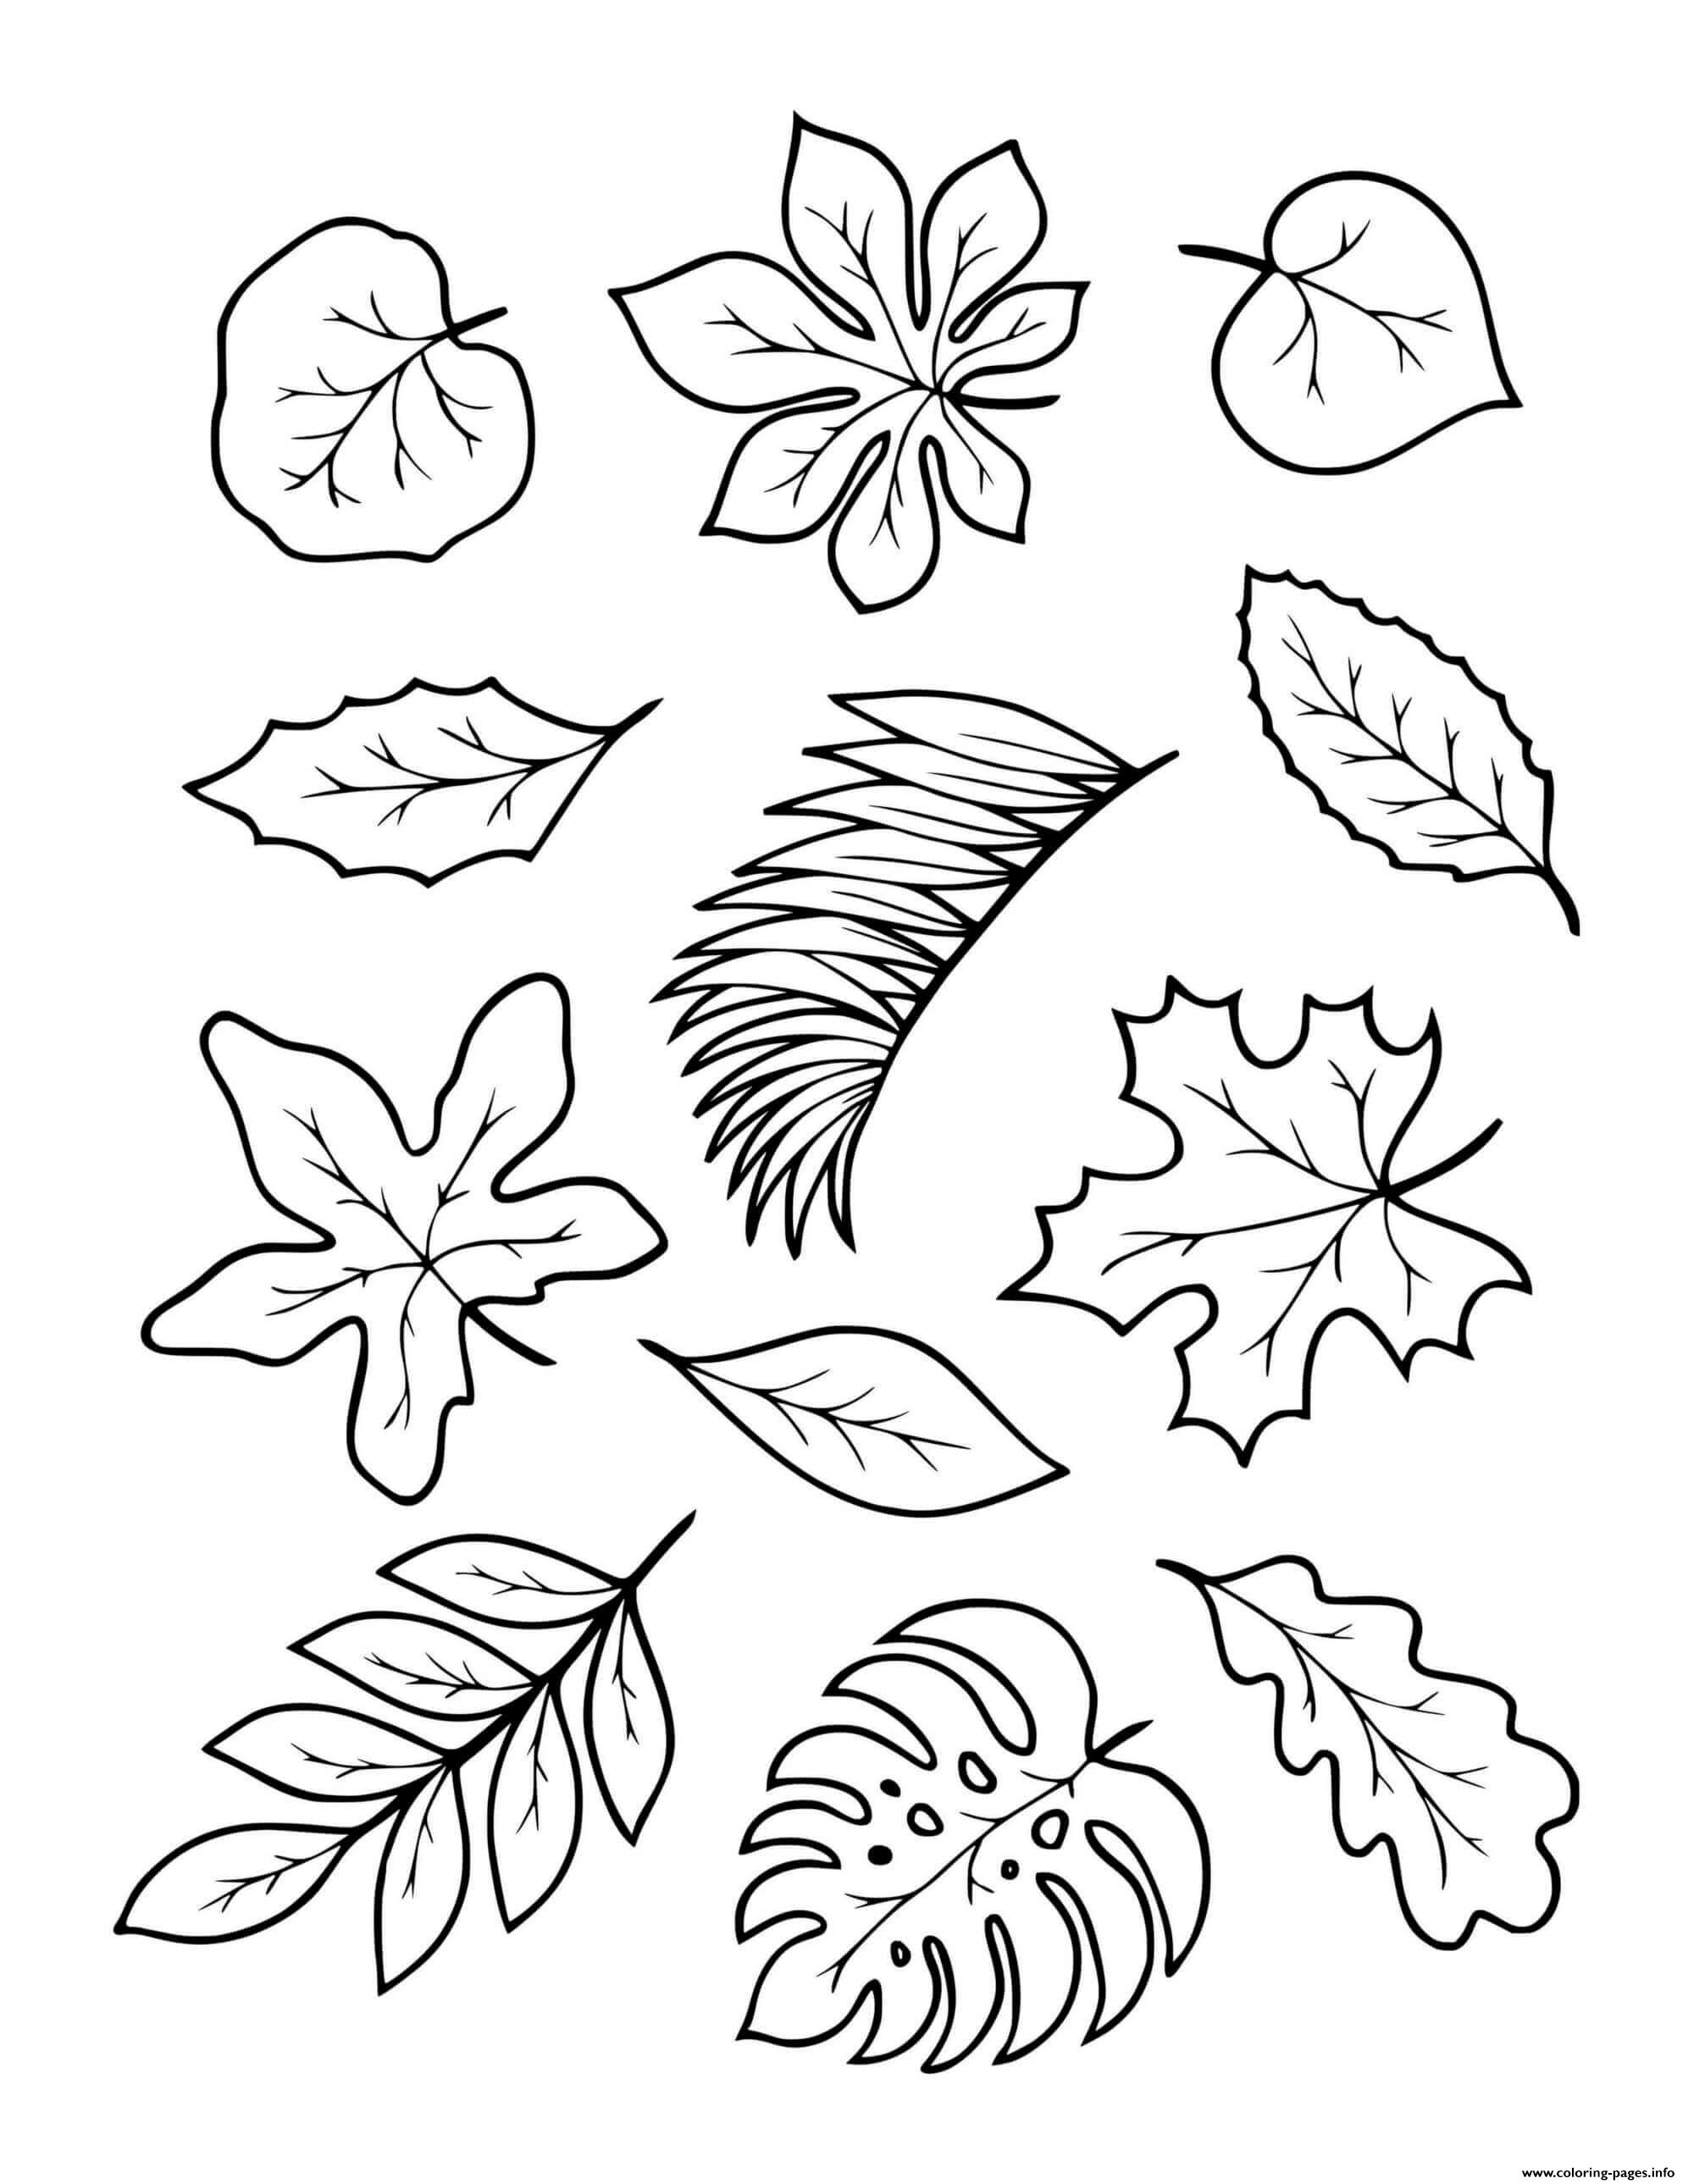 Fall Autumn Leaves To Color Coloring Pages Printable